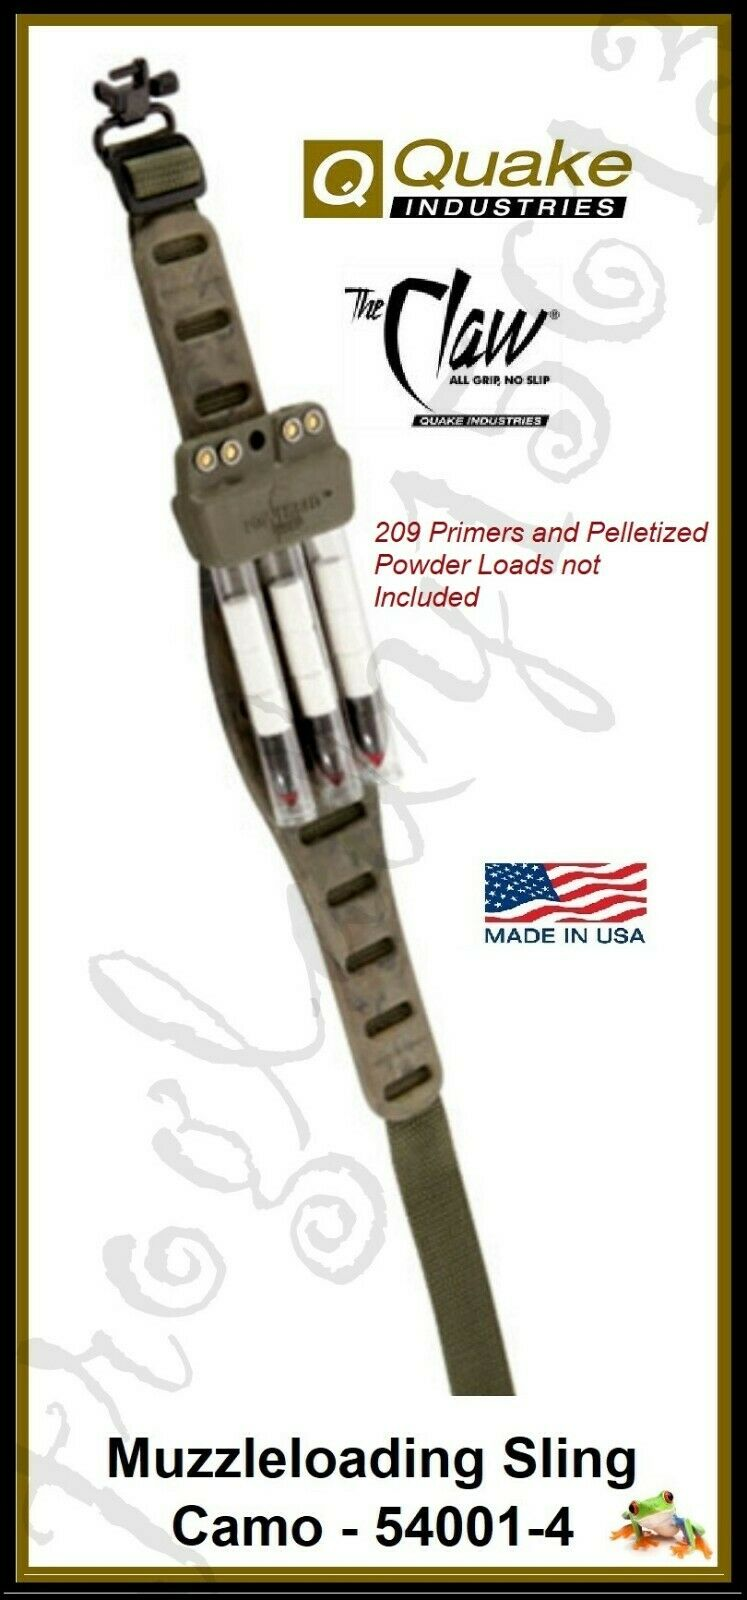 Blackpowder Products The Claw Countour Rifle Sling 530015 Camo NEW